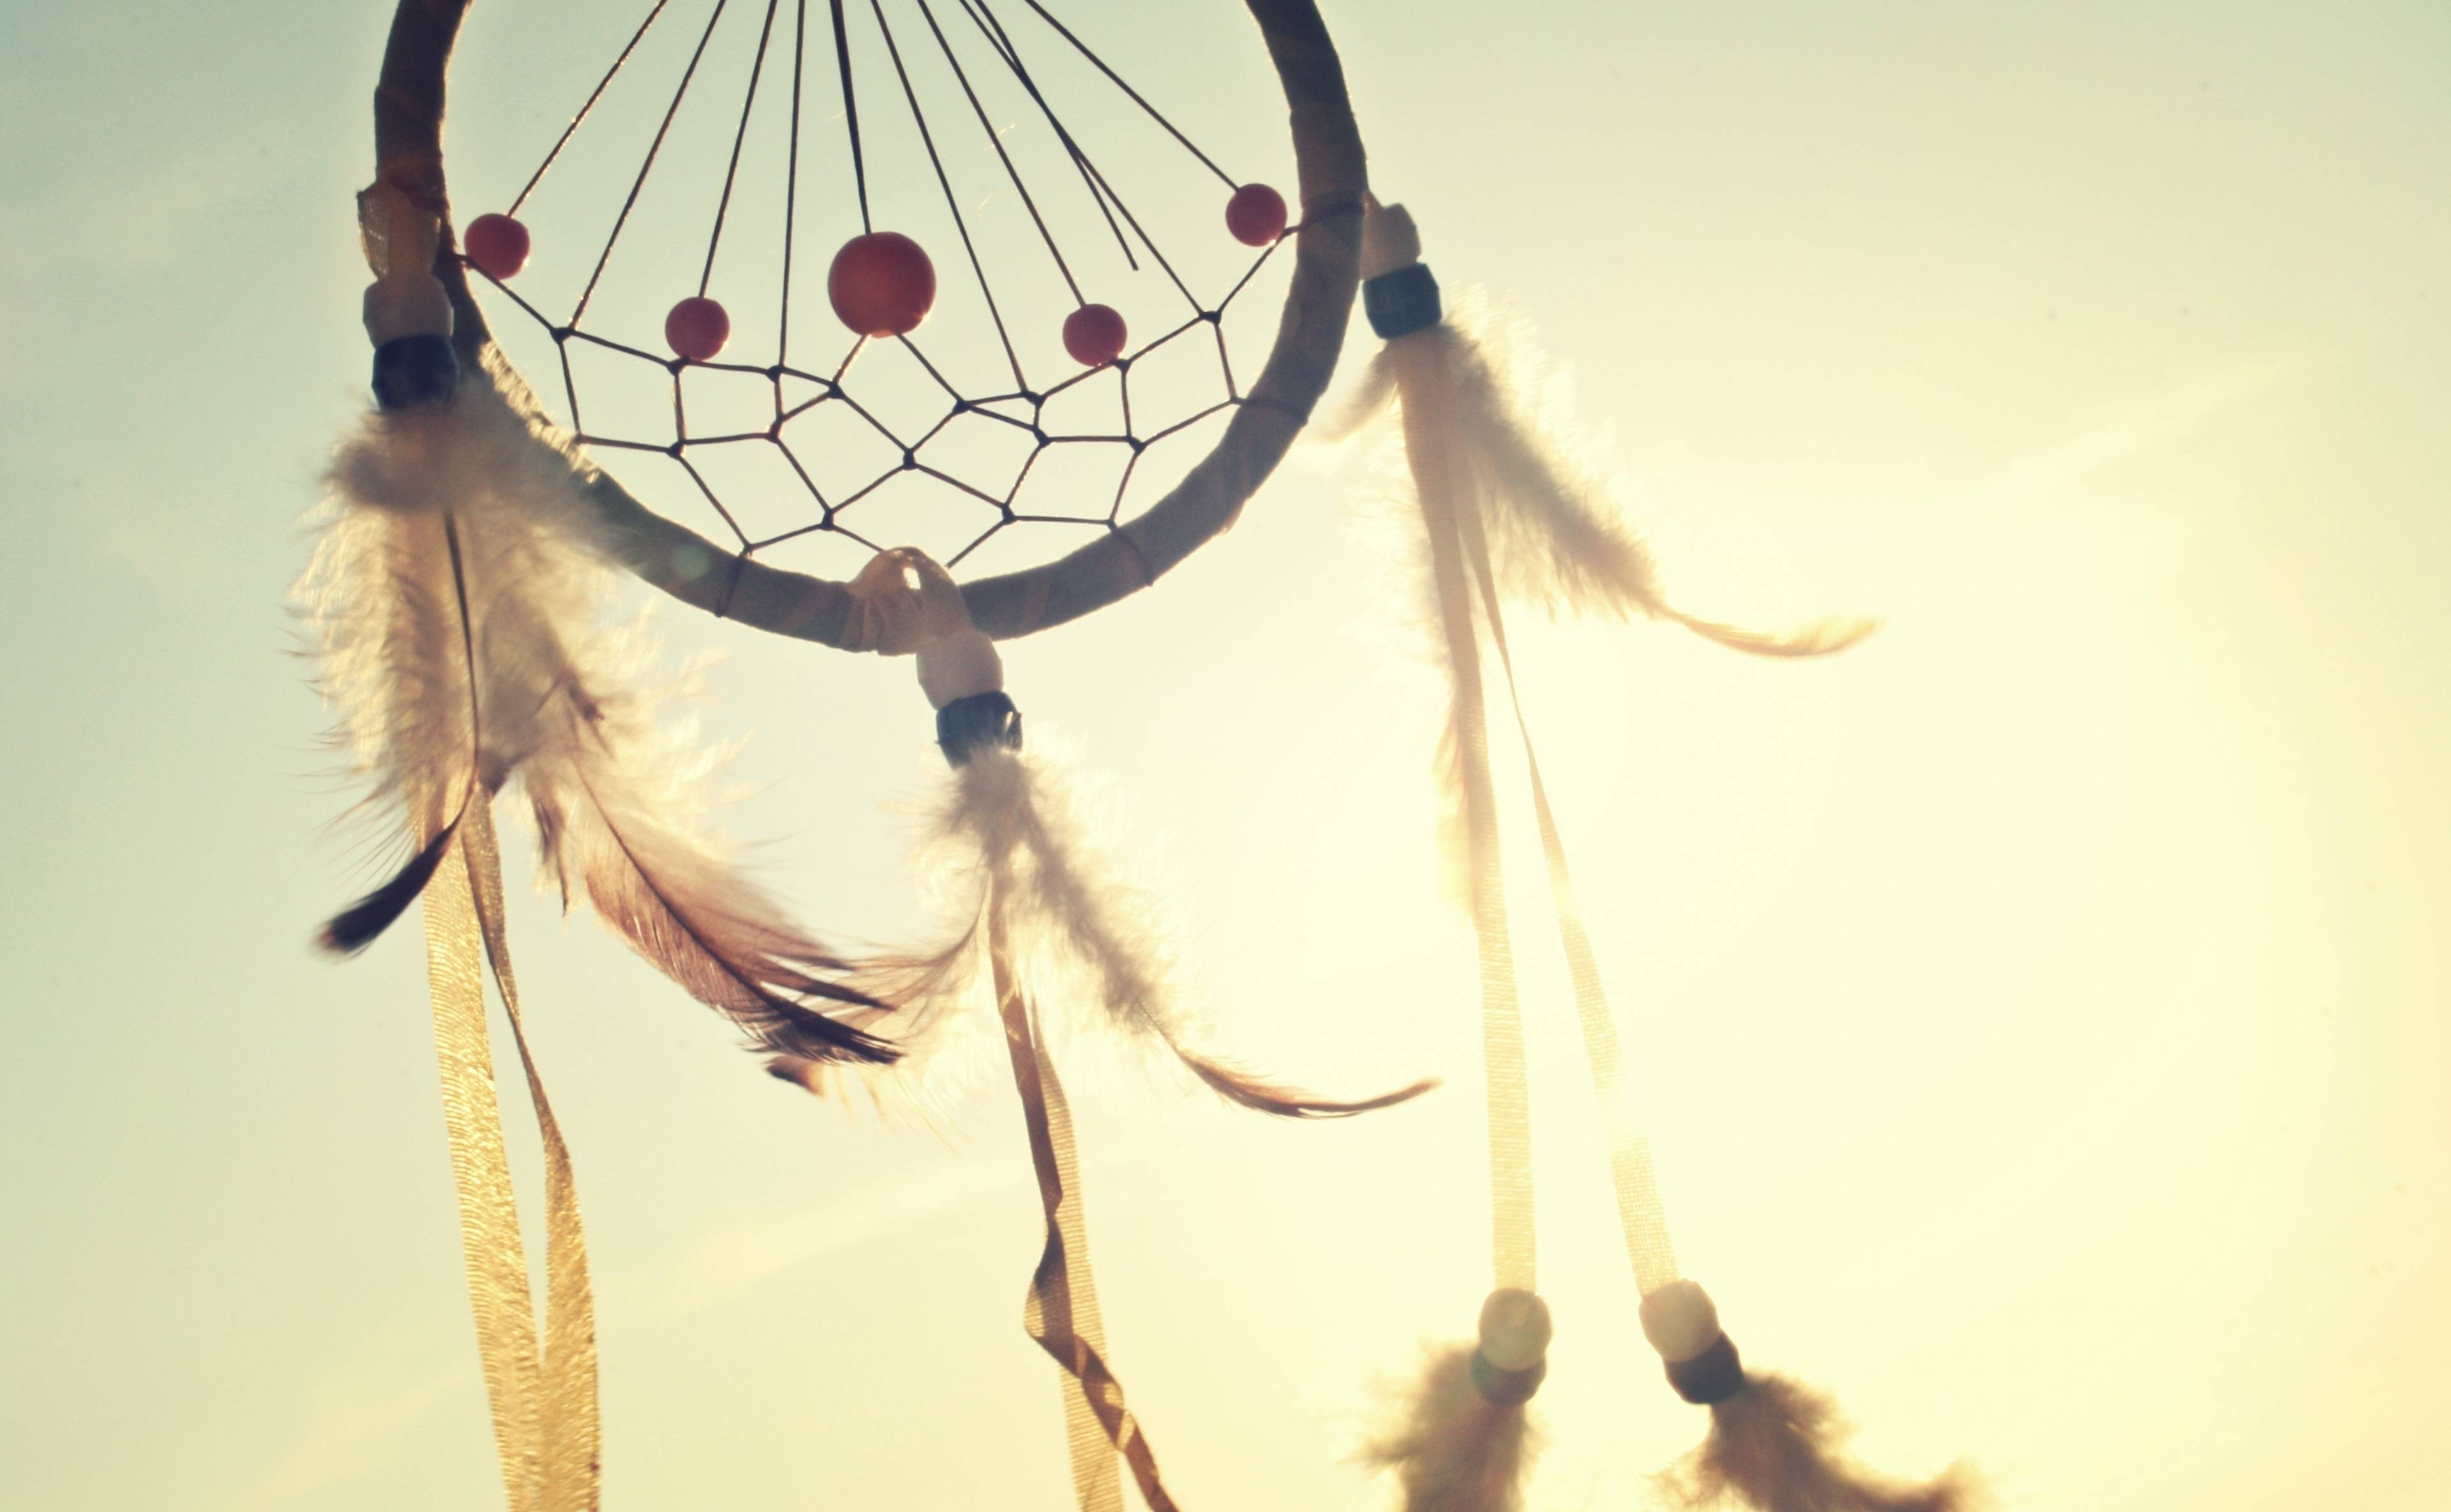 Photo collection native american wallpapers backgrounds native indian wallpaper native american wallpaper backgrounds toneelgroepblik Choice Image